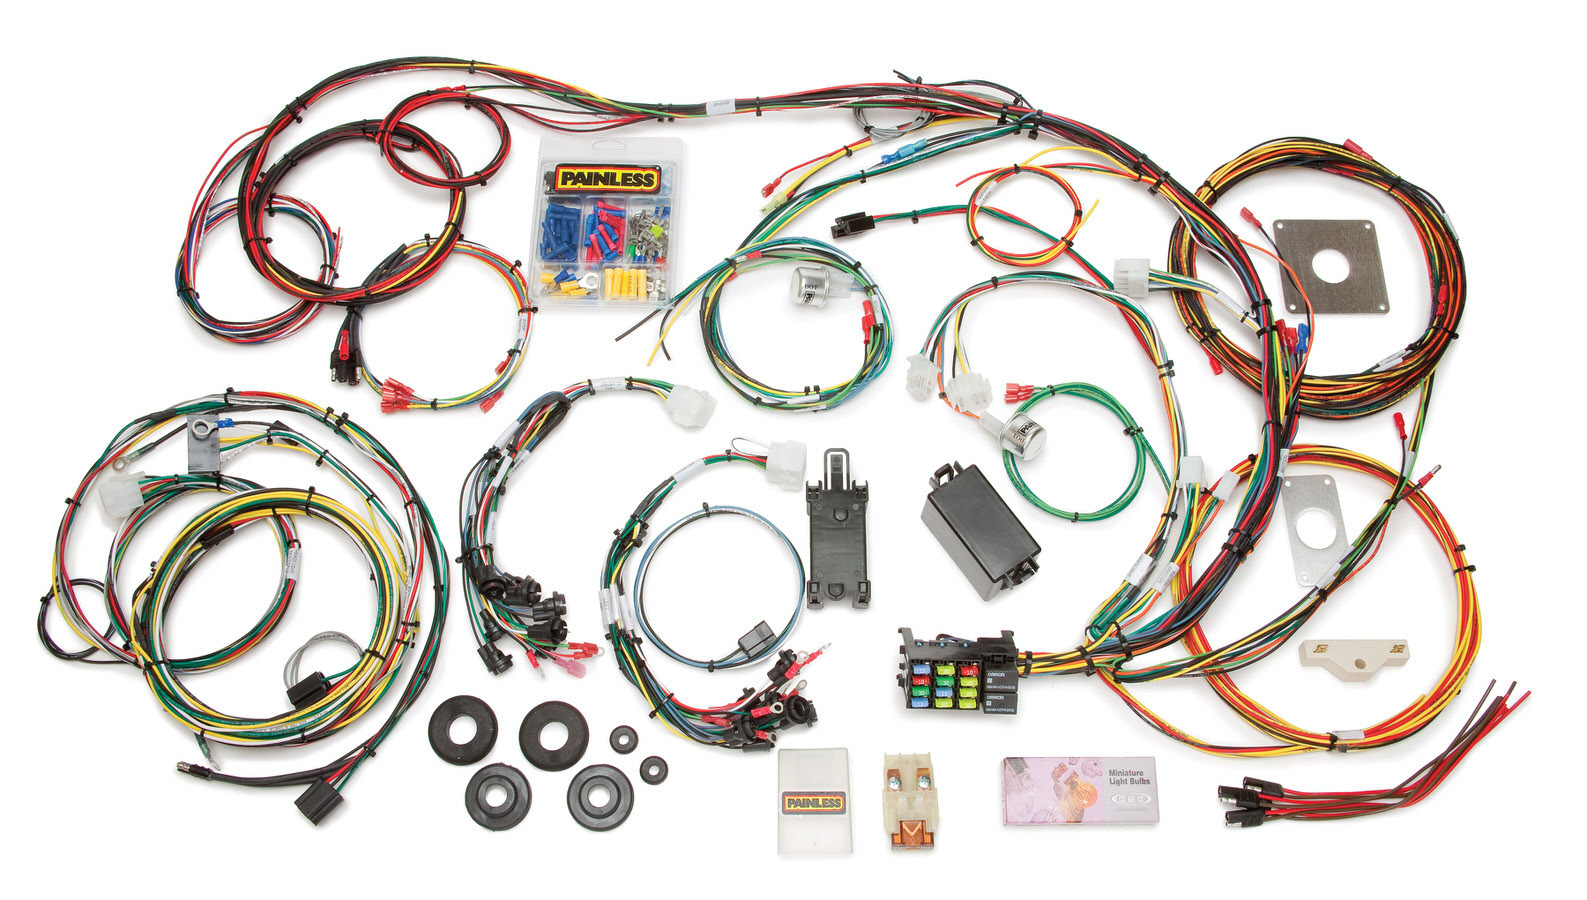 Painless Wiring 20120 Car Wiring Harness, Direct Fit, Complete, 22 Circuit, Ford Mustang 1965-66, Kit